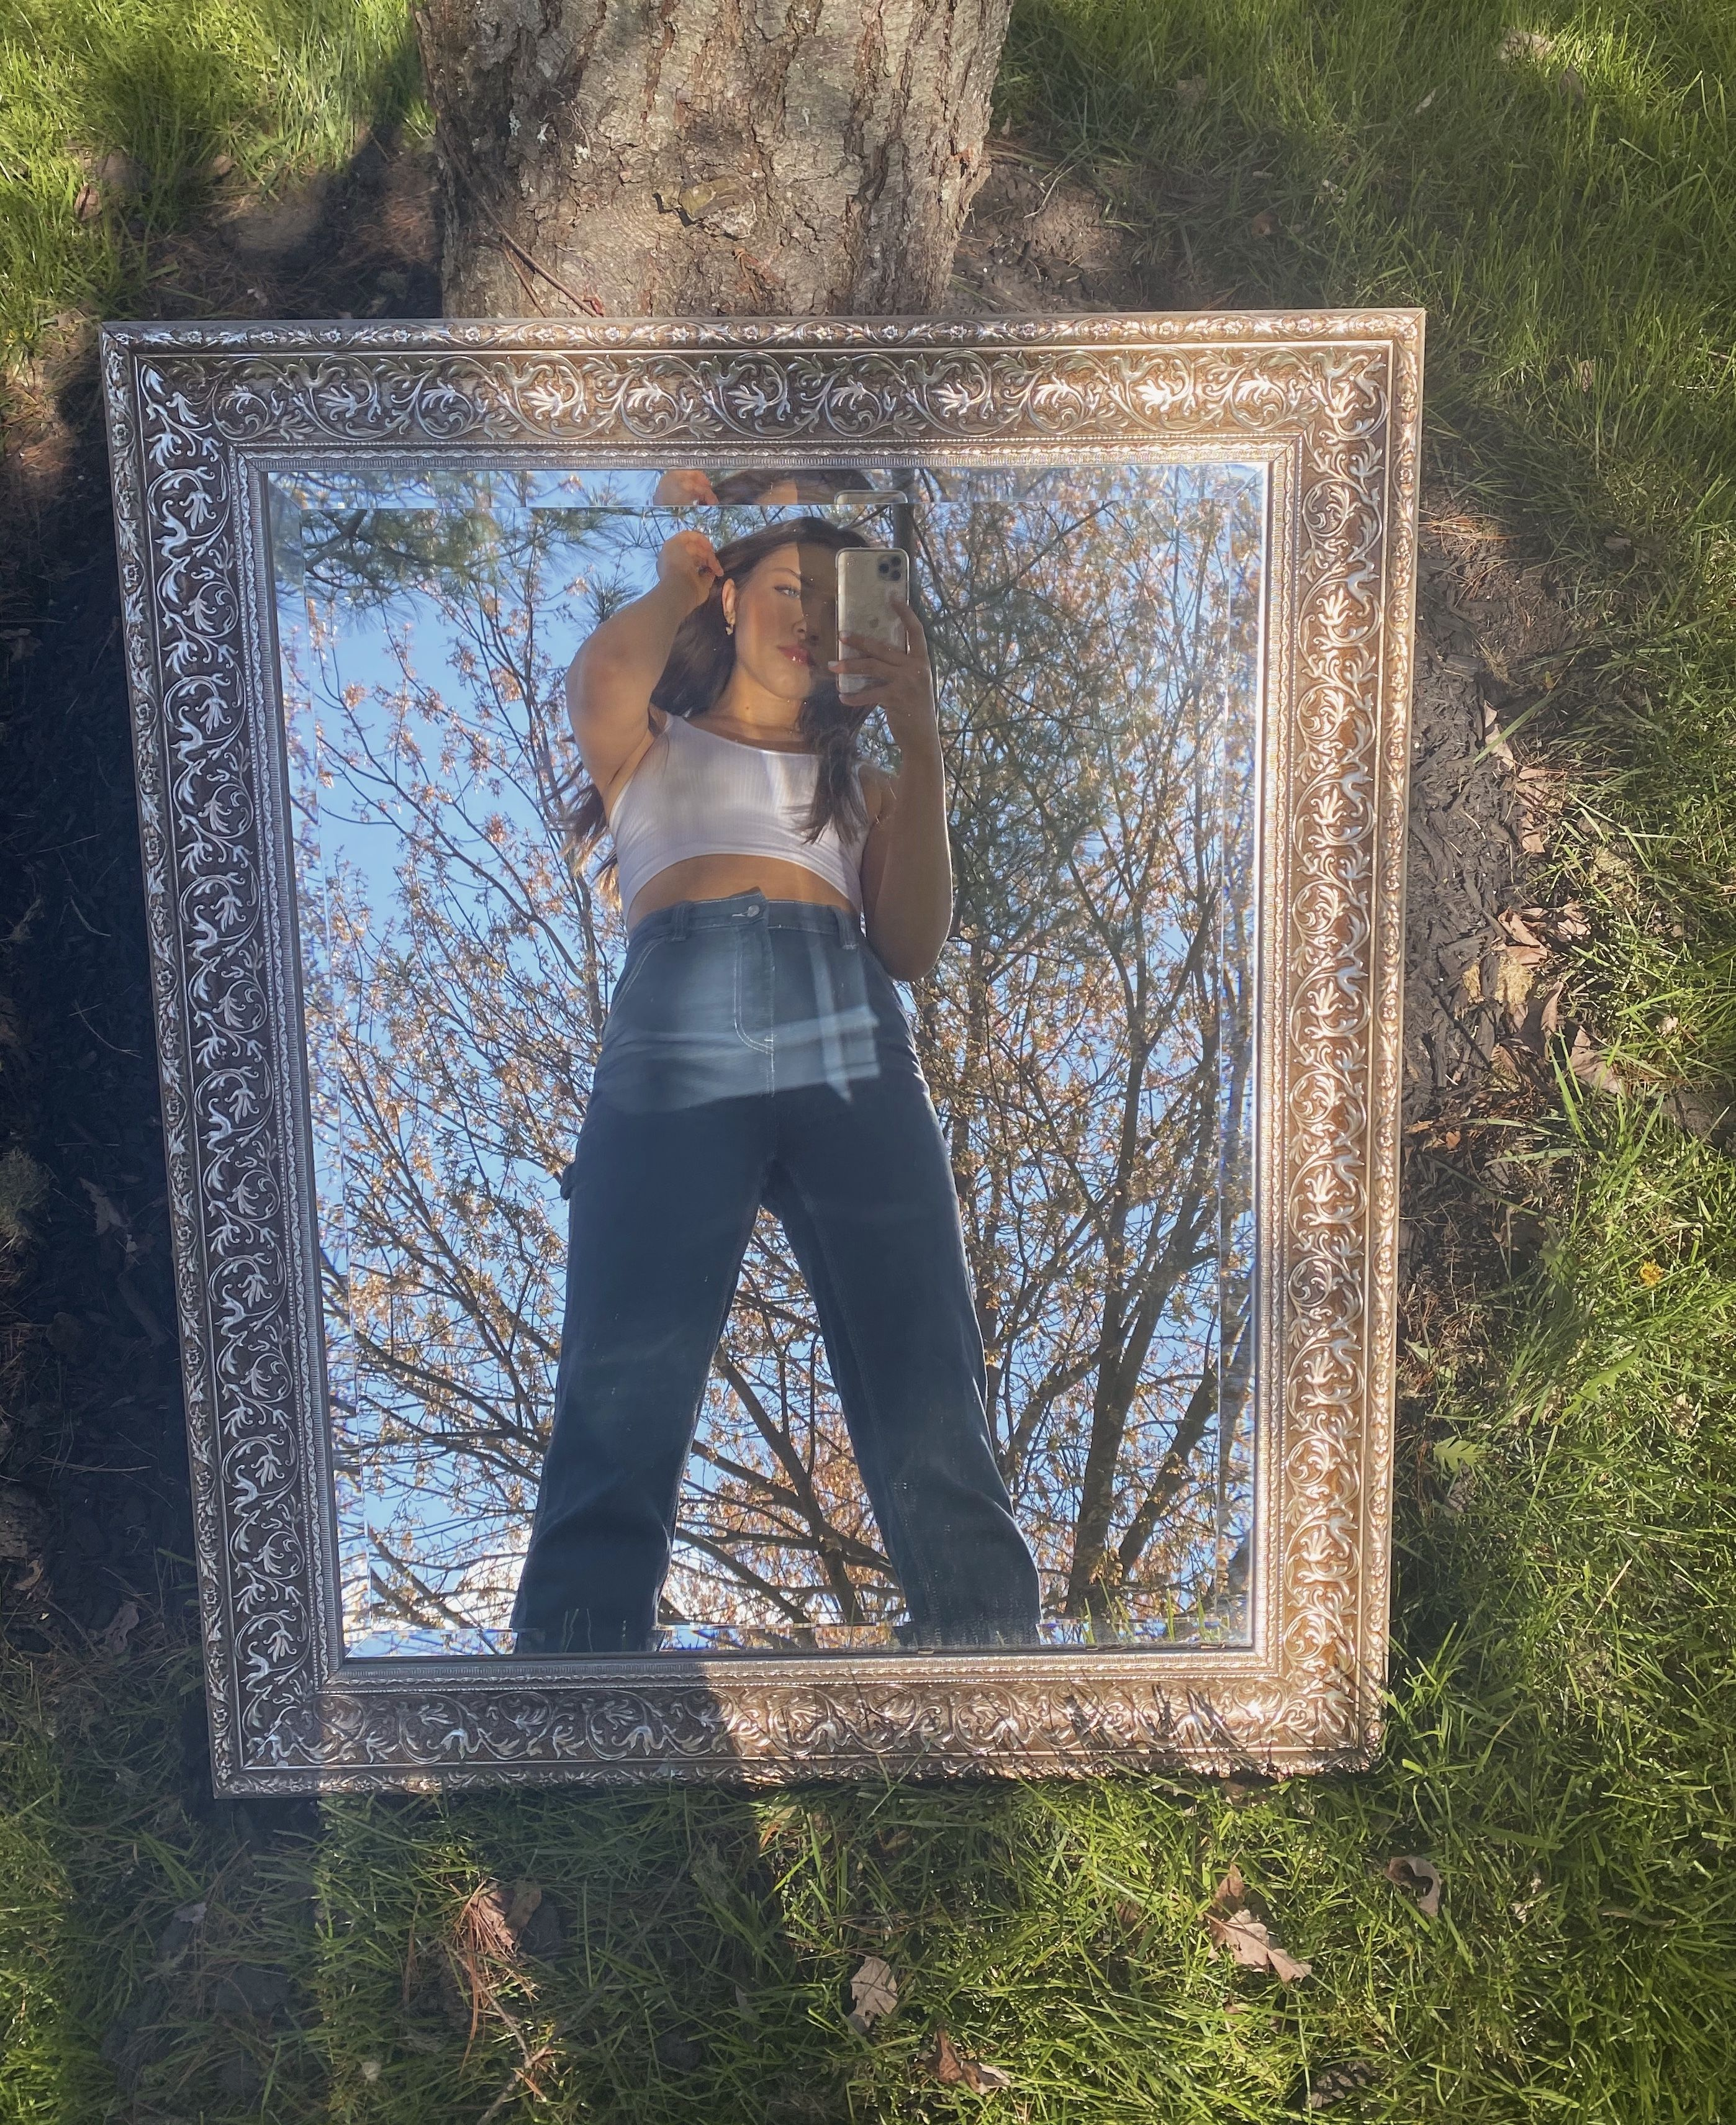 Mirror Picture Outdoors Outdoor Mirror Mirror Photography Instagram Ideas Photography